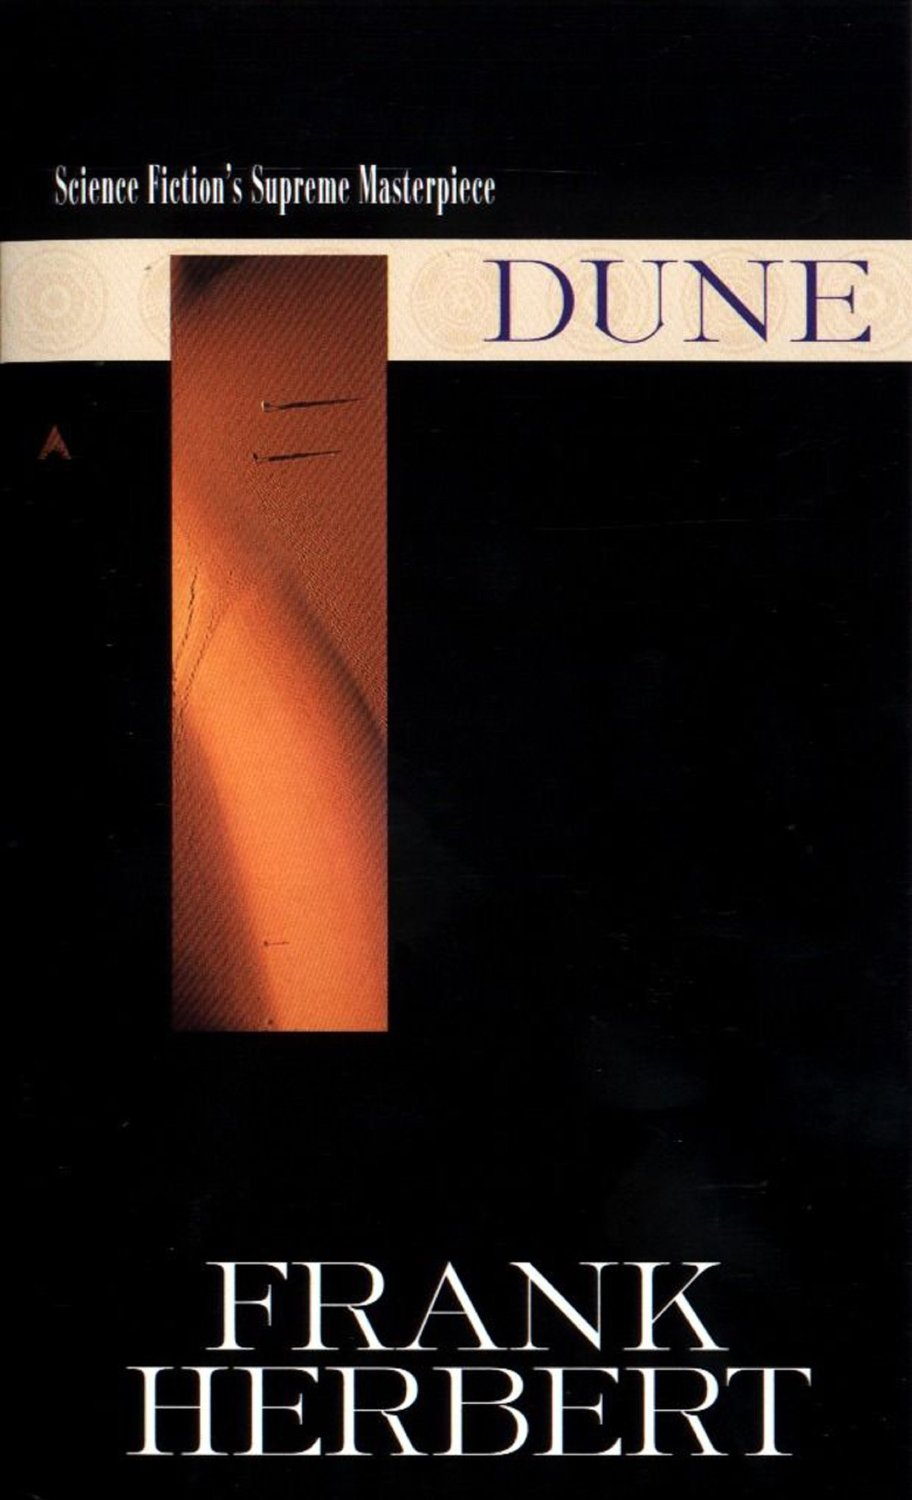 Dune-Book-Cover-06082015